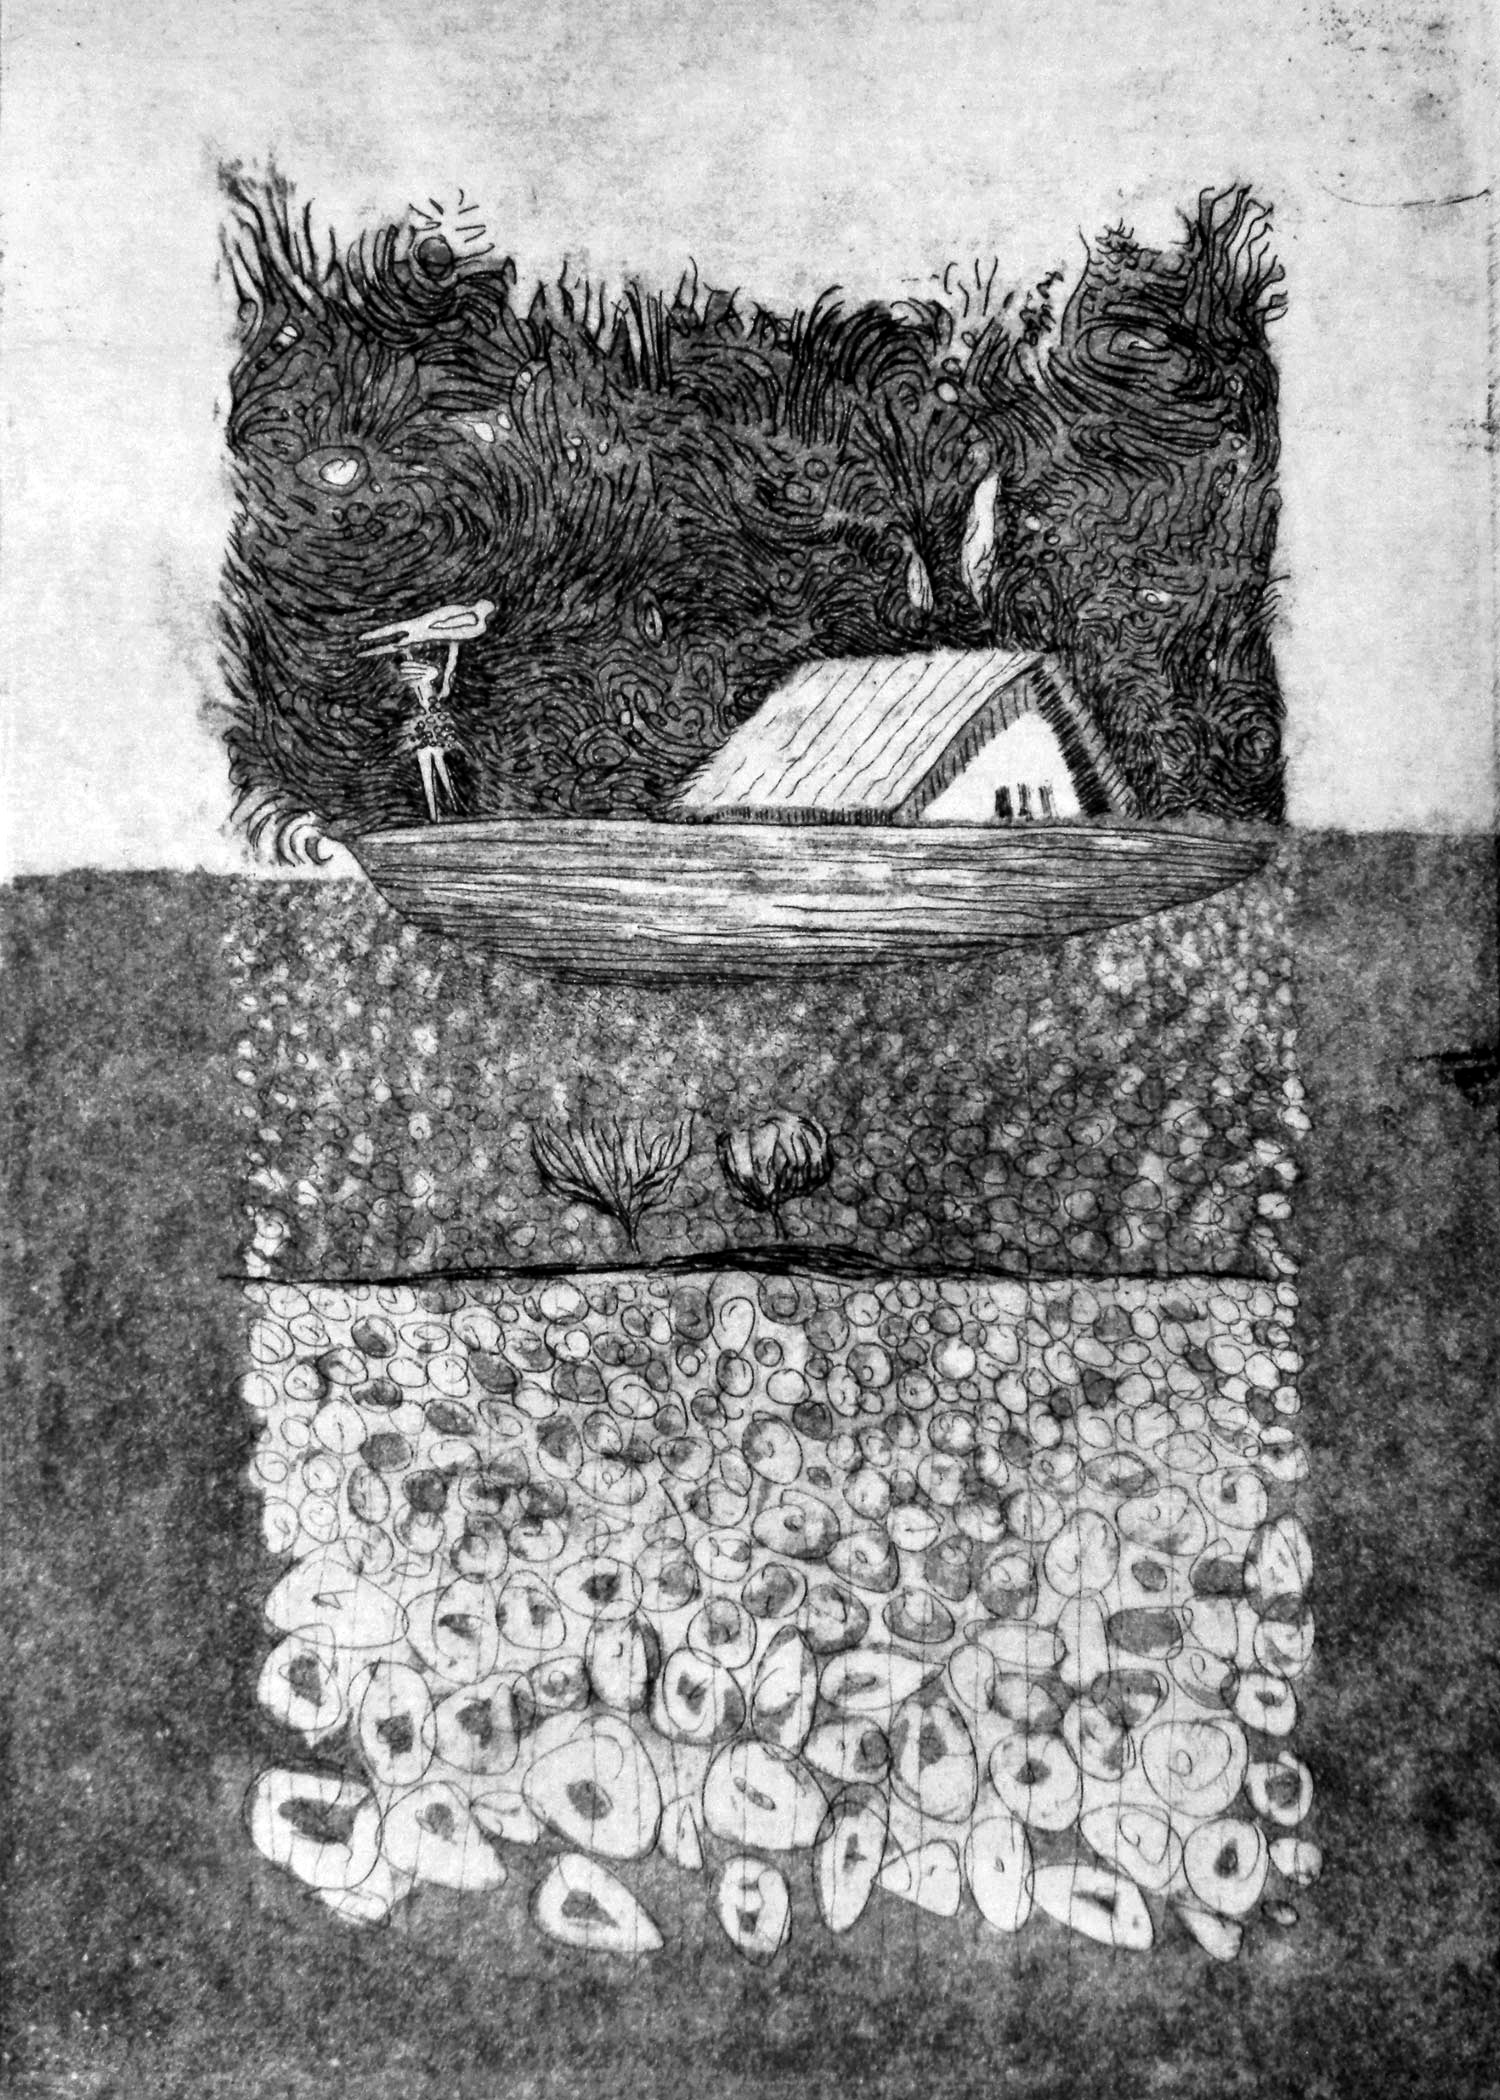 Carrying You Home etching